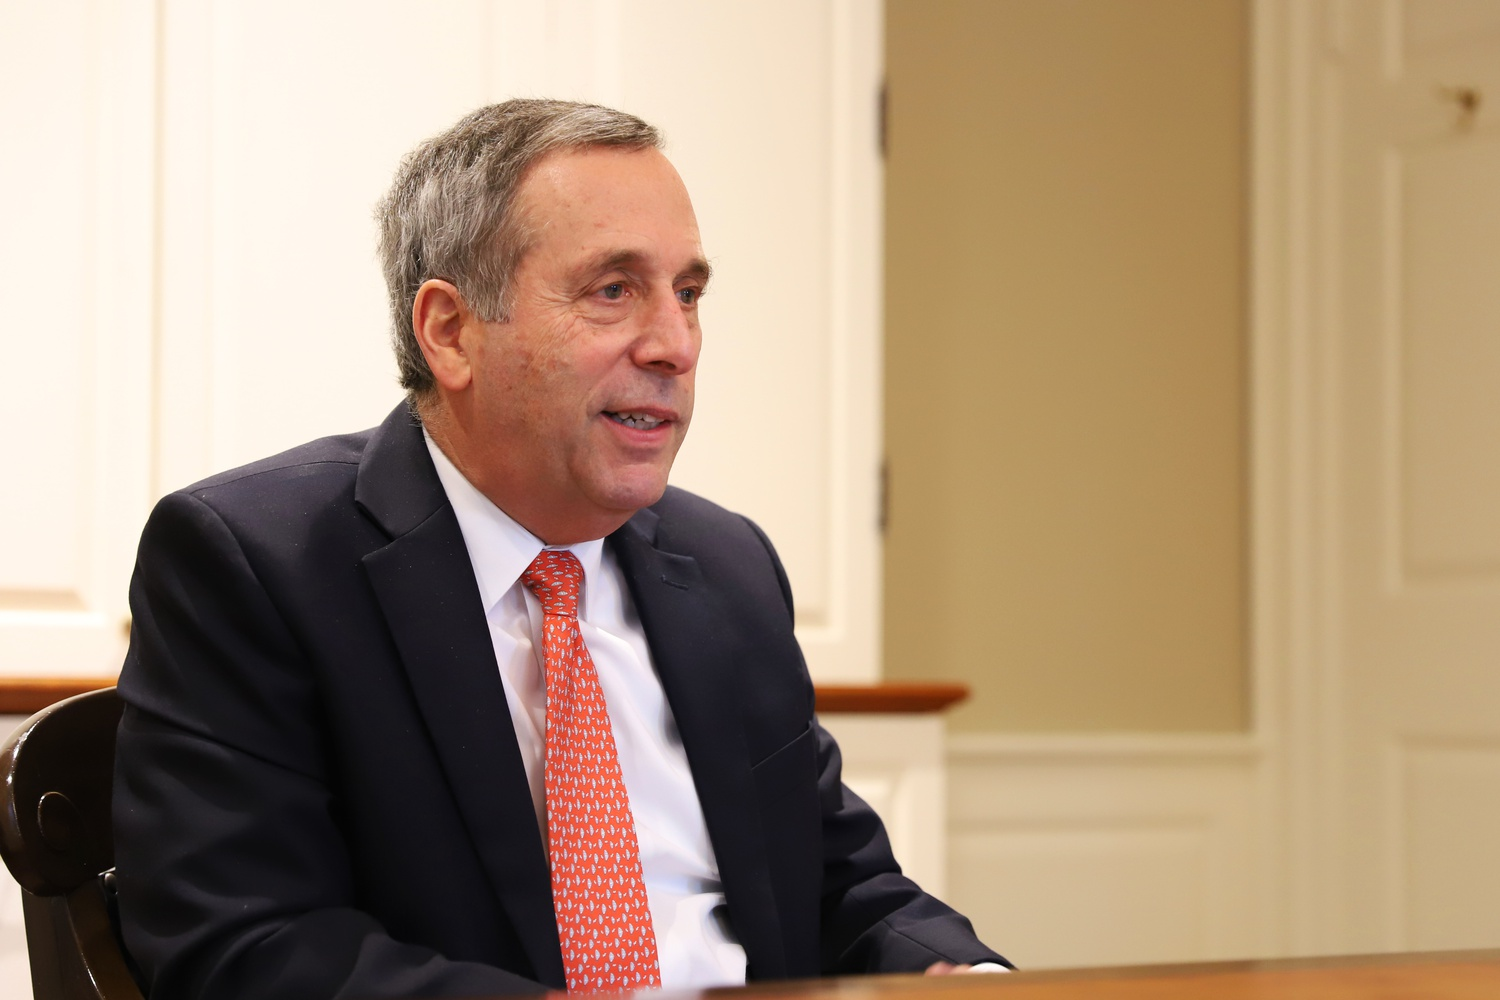 University President Lawrence S. Bacow's office is located inside Massachusetts Hall.